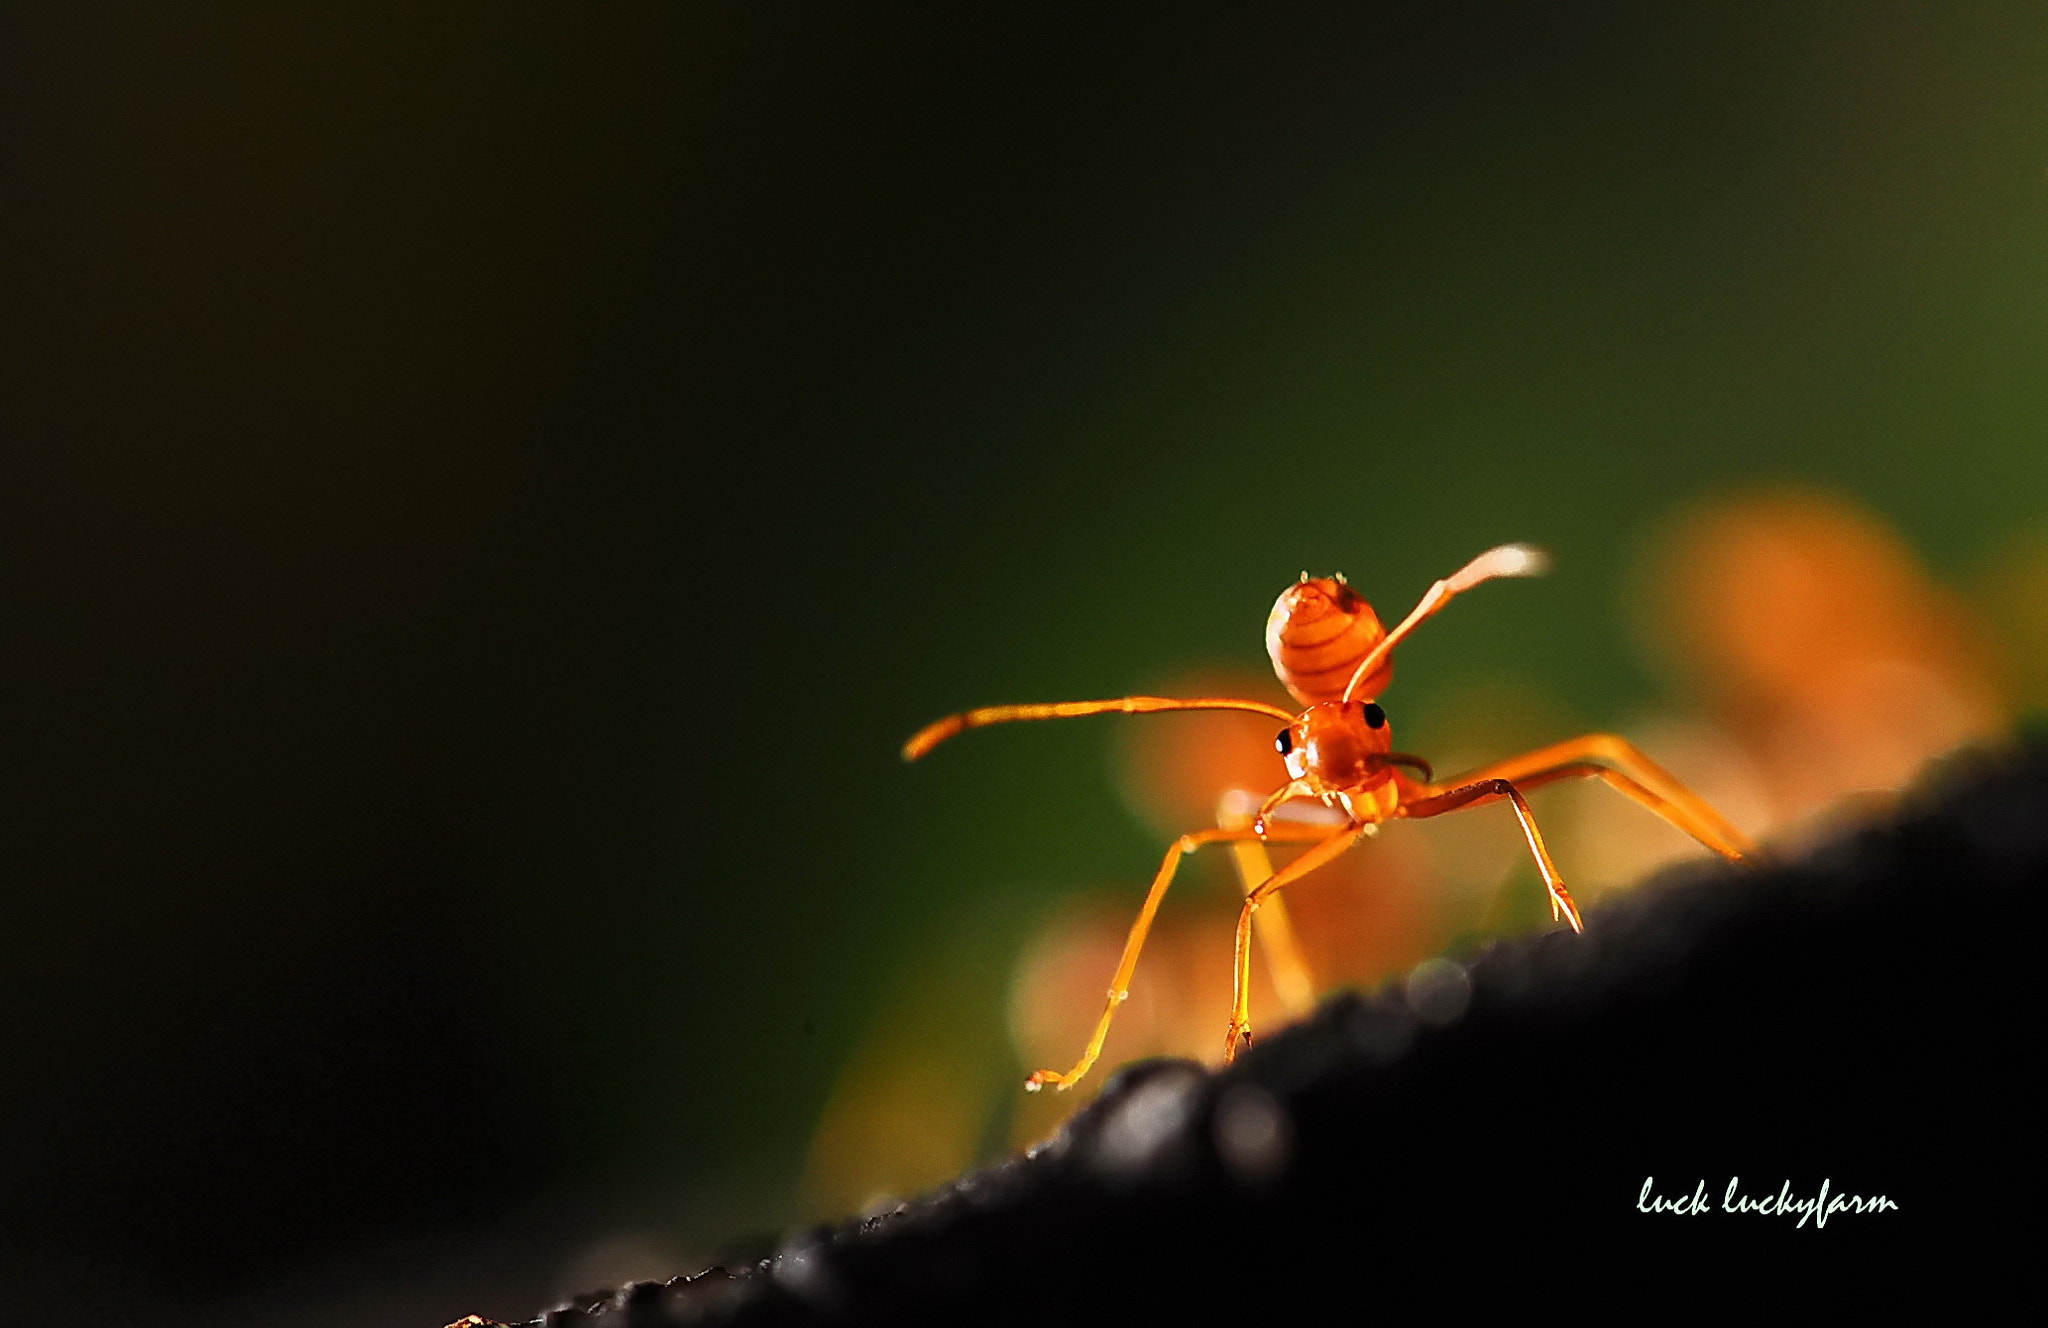 Photograph Fighter!! by Luck Luckyfarm on 500px